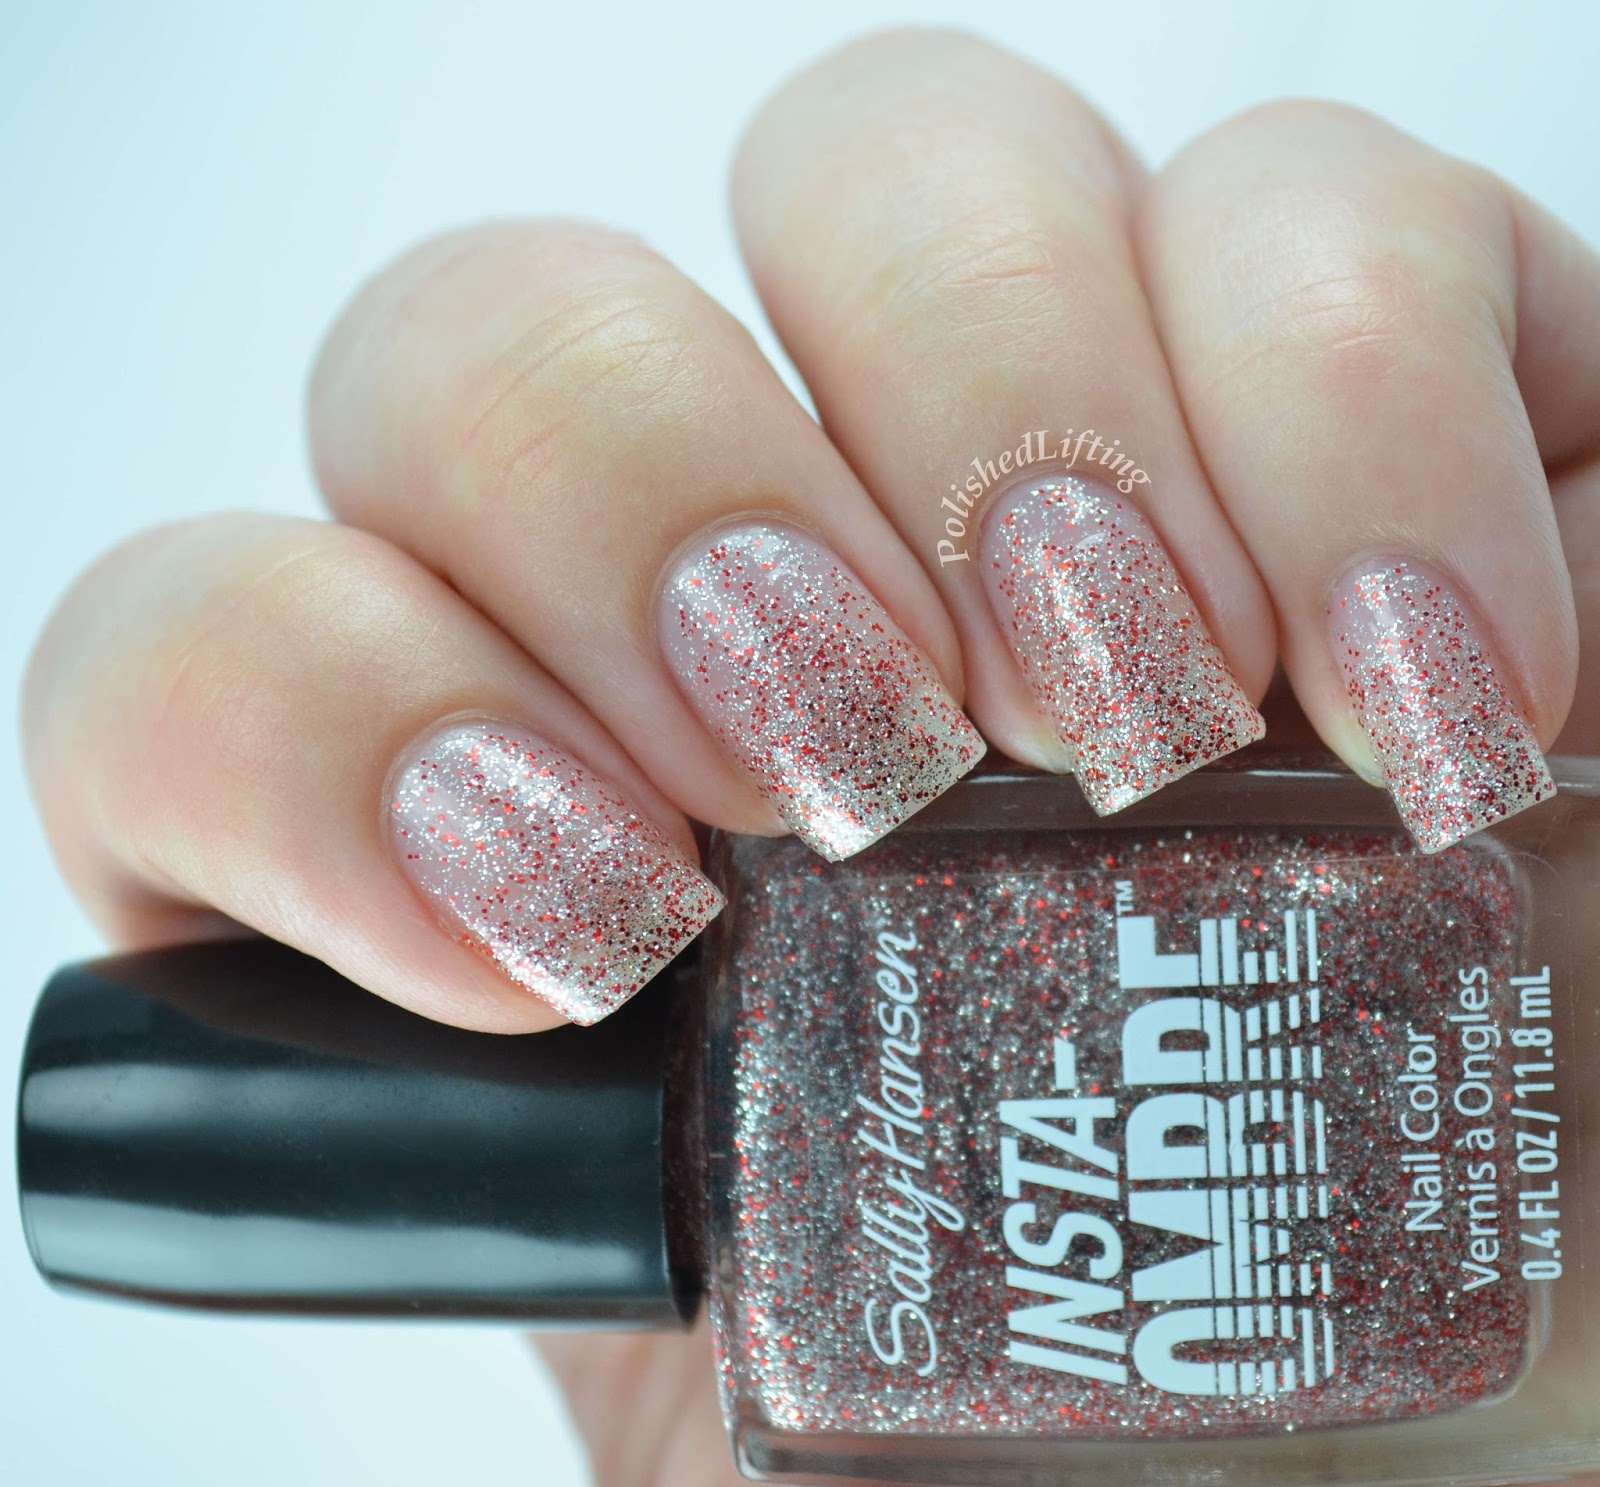 Polished Lifting: Sally Hansen Insta-Ombre Review